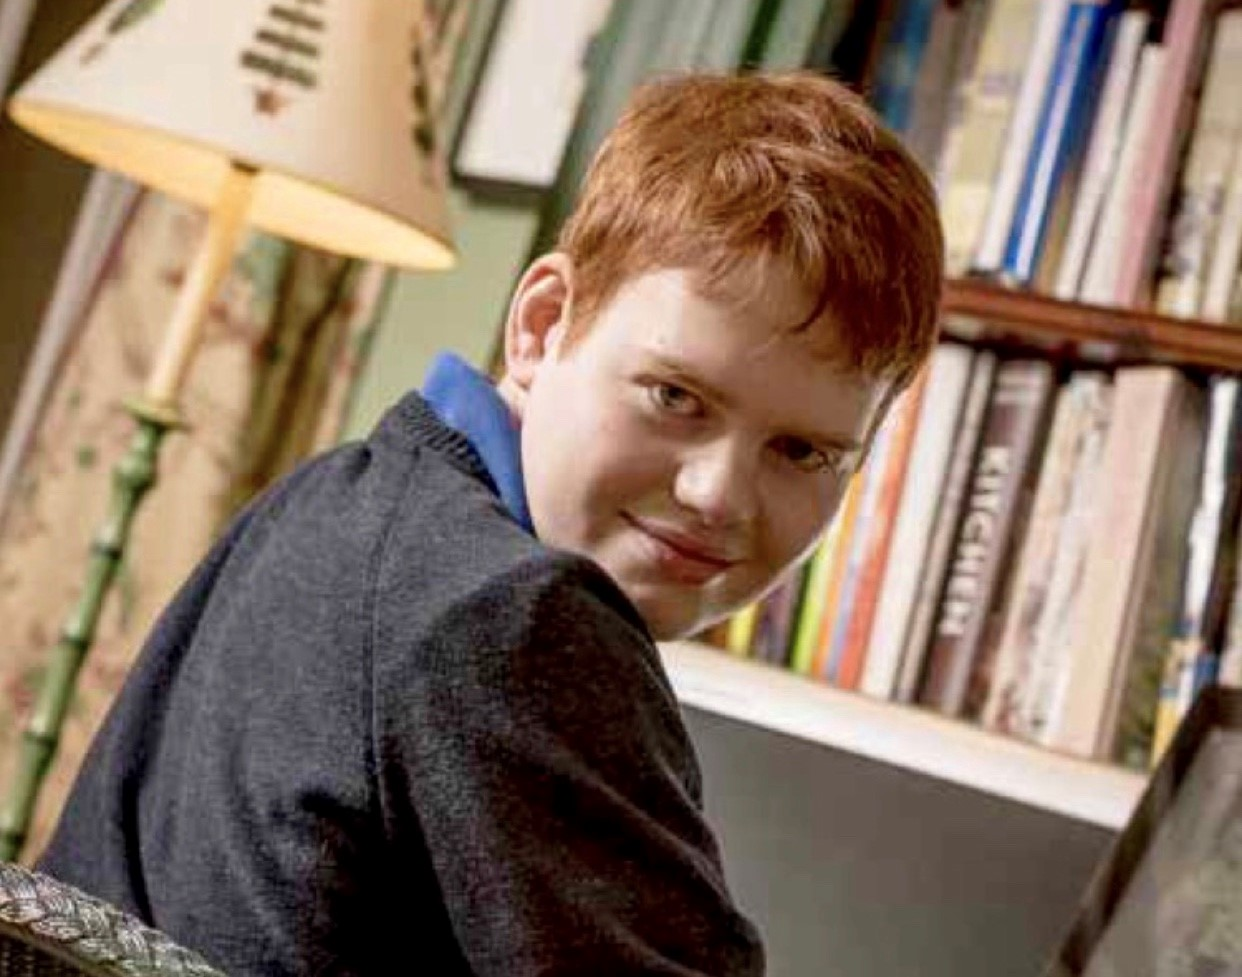 Muir is in school uniform - a grey jumper - and is grinning over his right shoulder. He is sitting at a desk, in front of a bookcase.